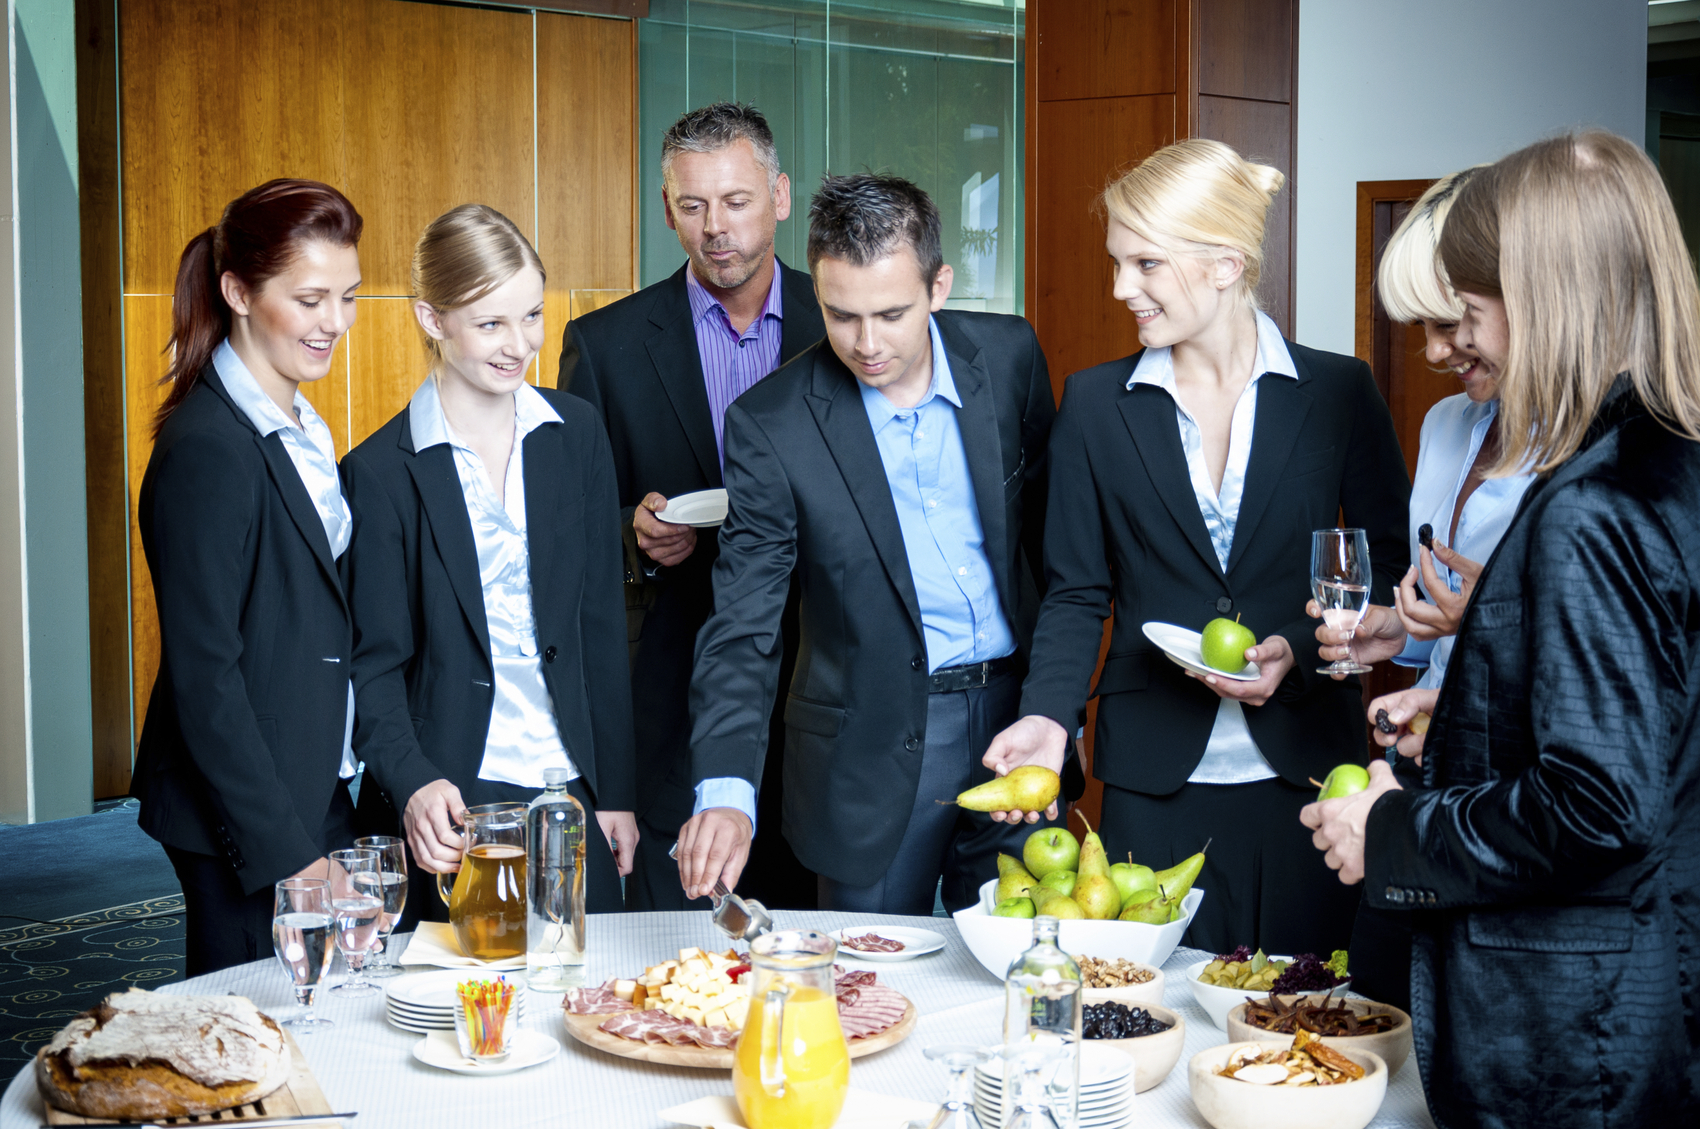 Epic Events by Booth, Inc. - Corporate Luncheon Event Planning - Business Team Having A Buffet Lunch